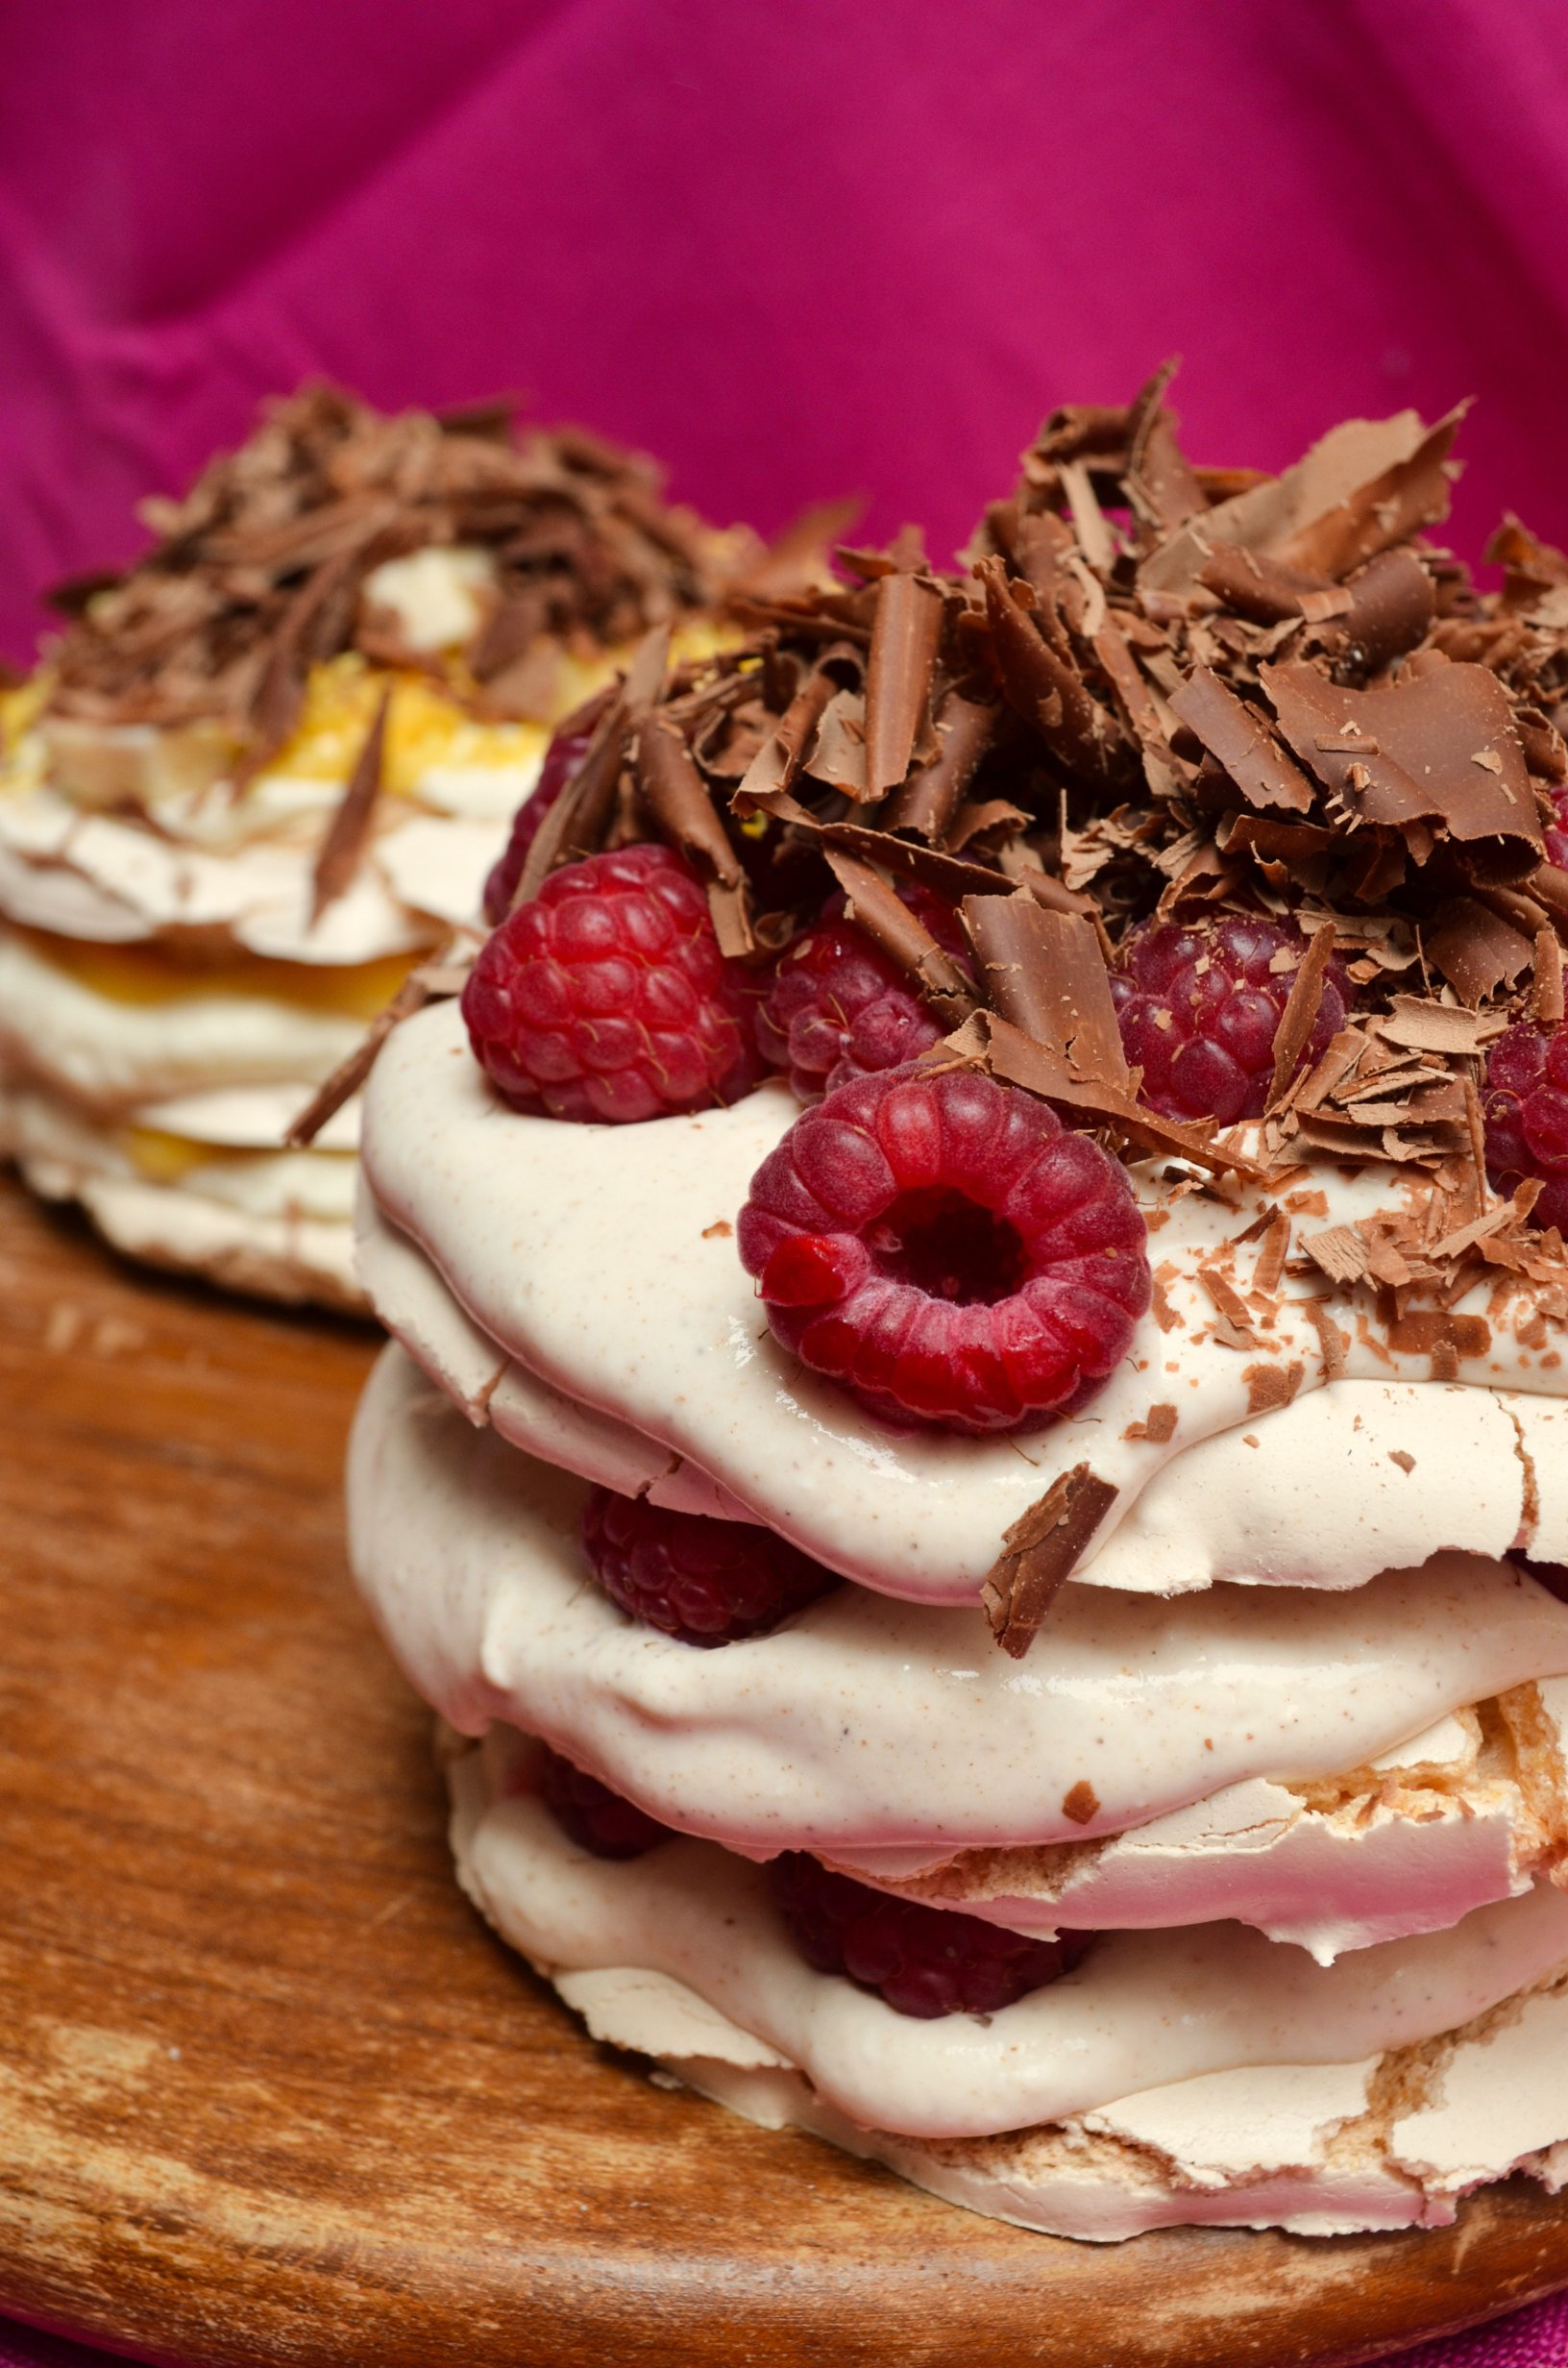 Donal Skehan's Mini Pavlovas with Raspberries, Chocolate and Lemon Curd by ginger, lemon & spice